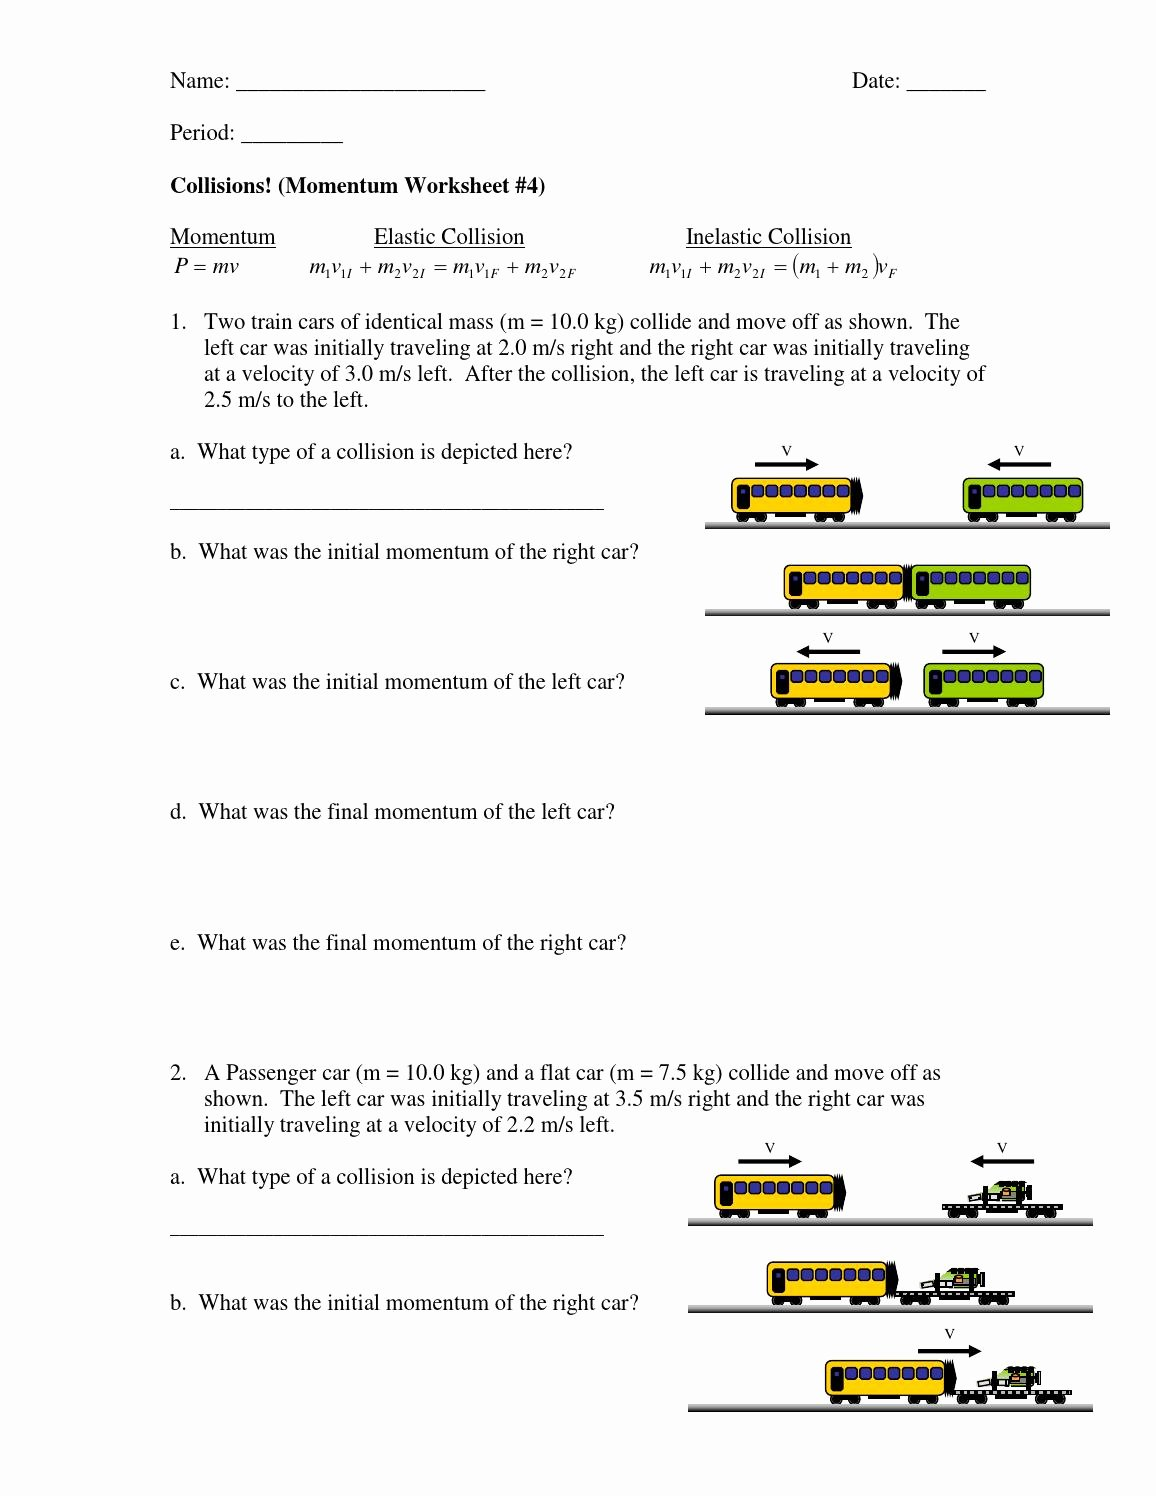 Momentum and Collisions Worksheet Answers Lovely Inelastic Collisions Worksheet Student by Emlyn Majoos issuu